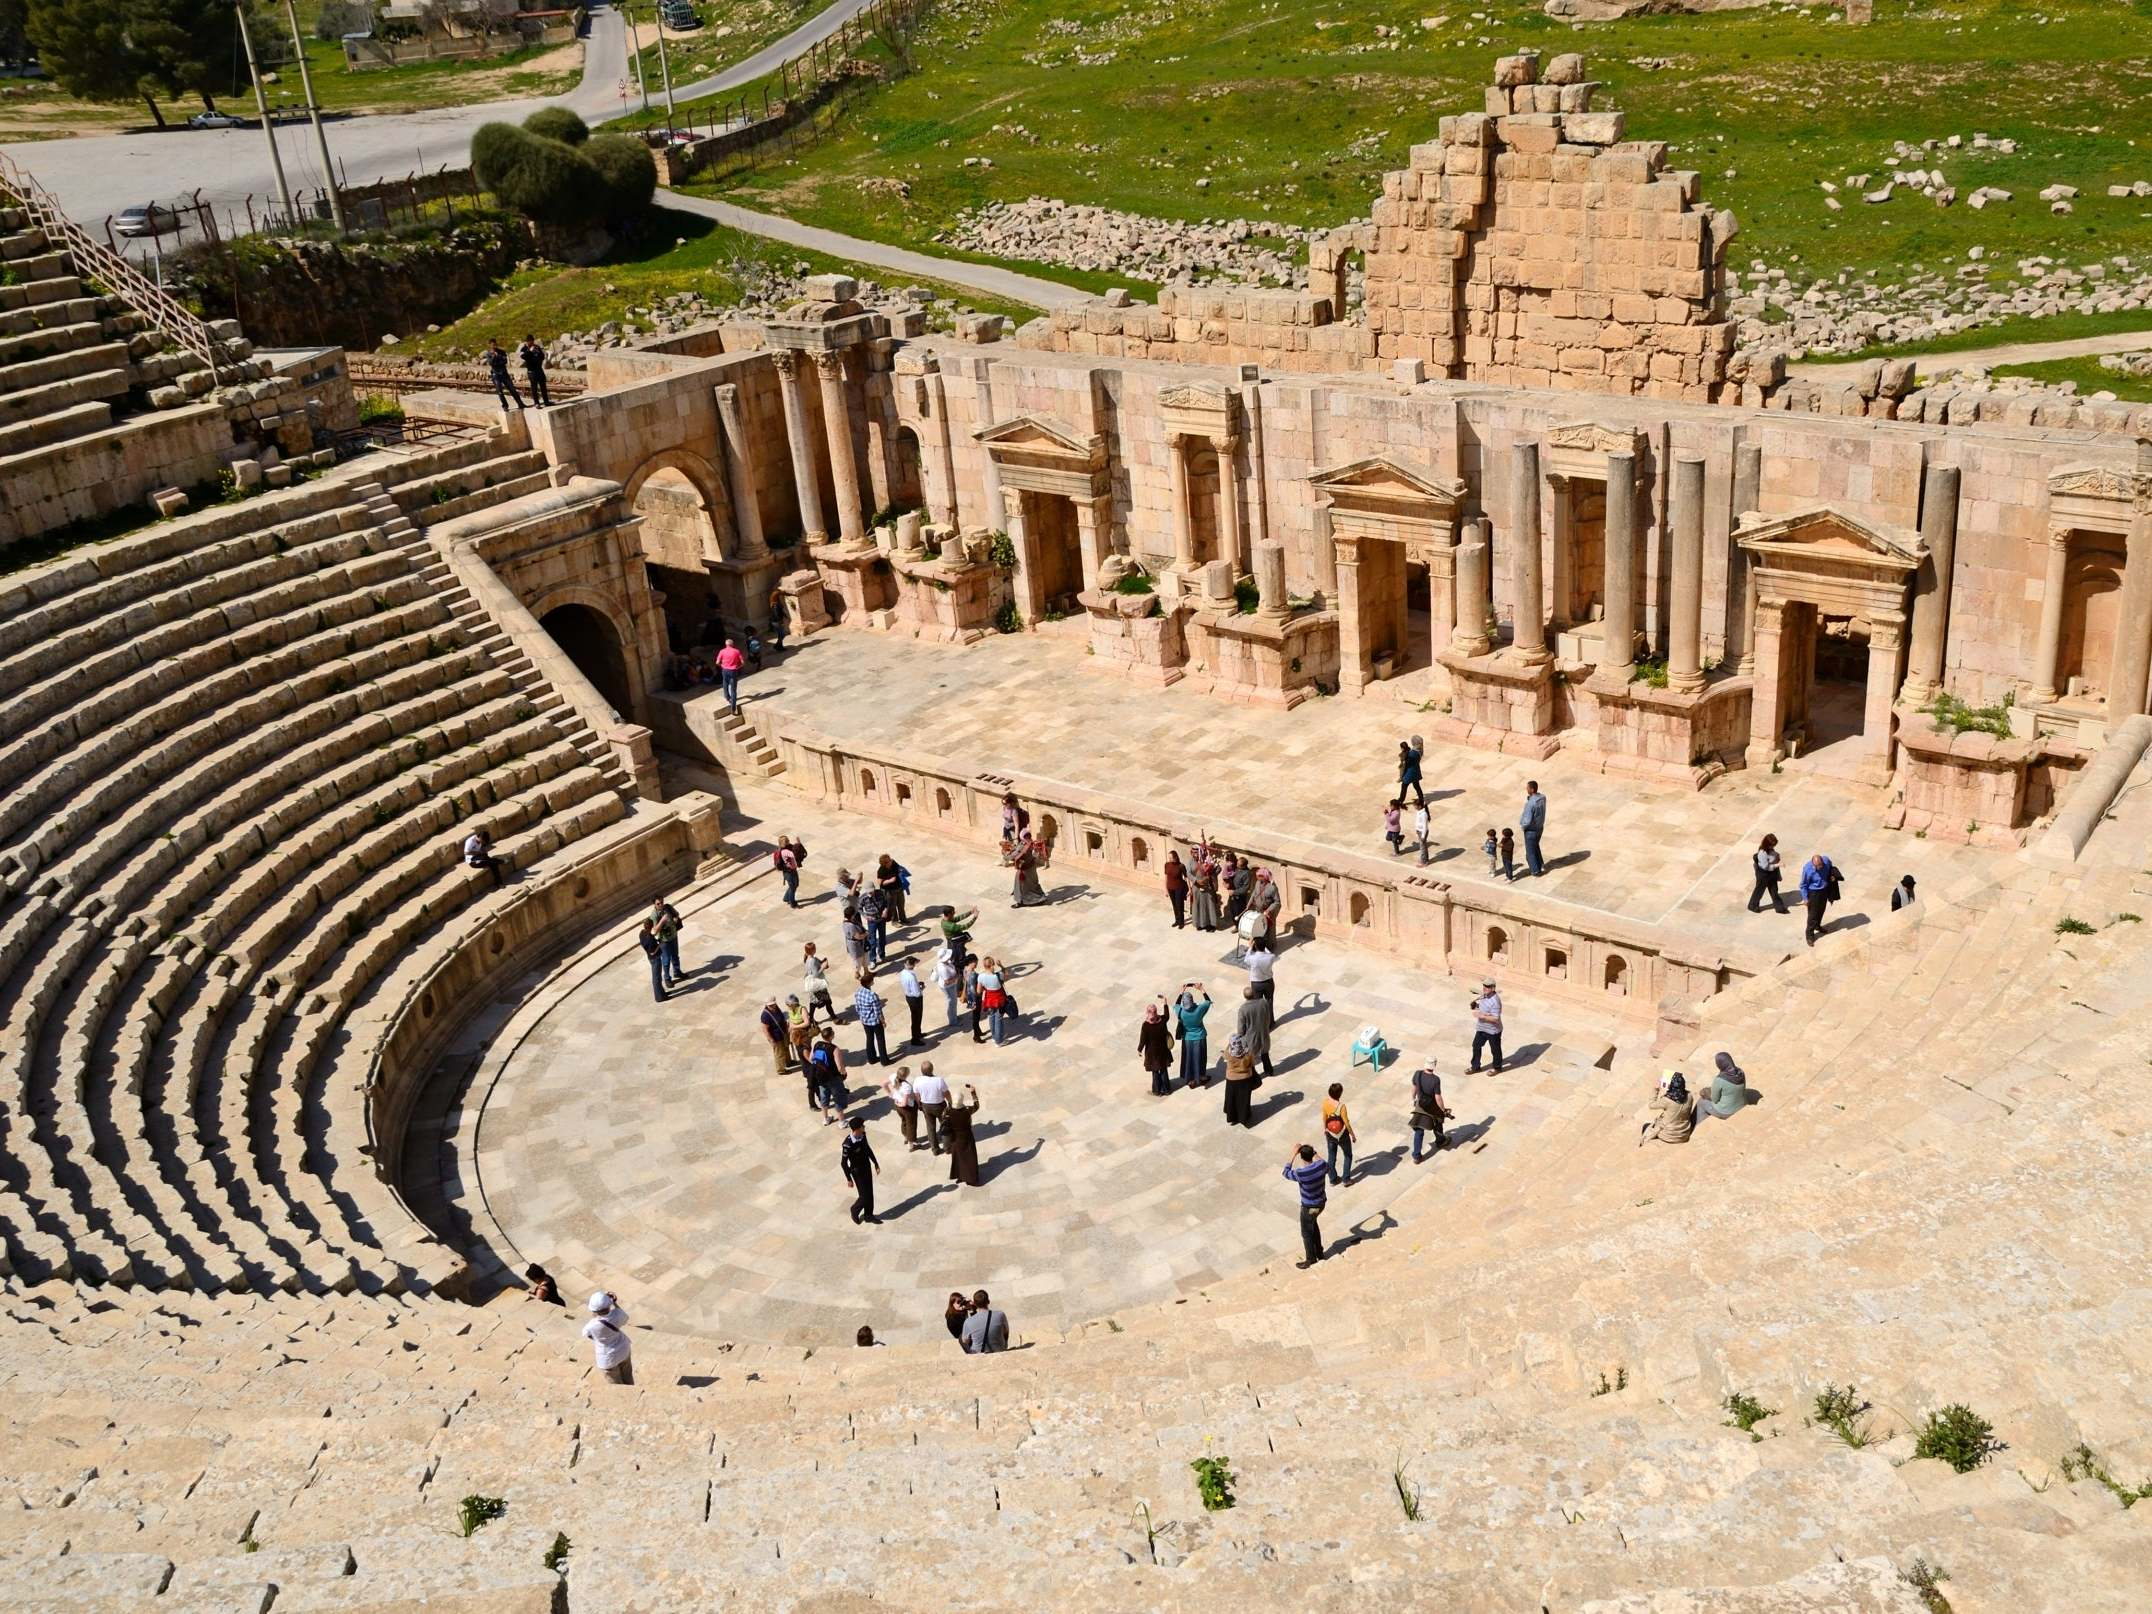 Jordan stabbing: Tourists and local guide attacked with knife in Jerash